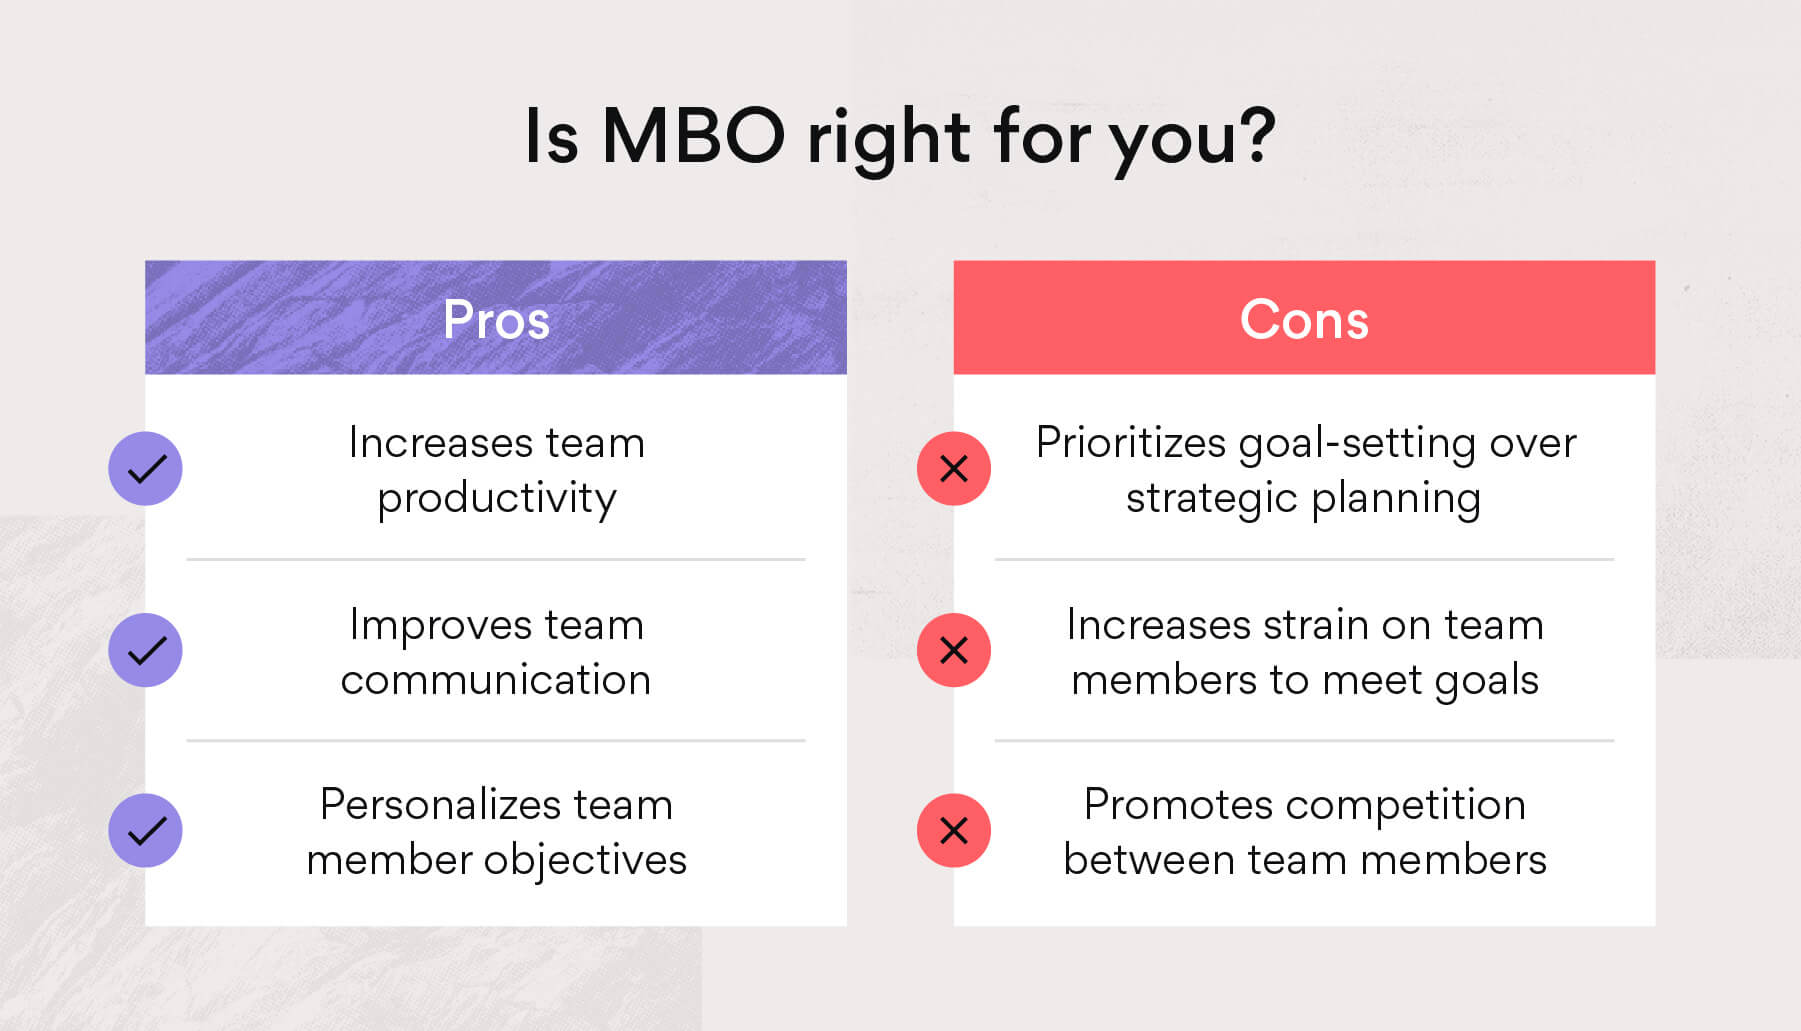 The pros and cons of MBO